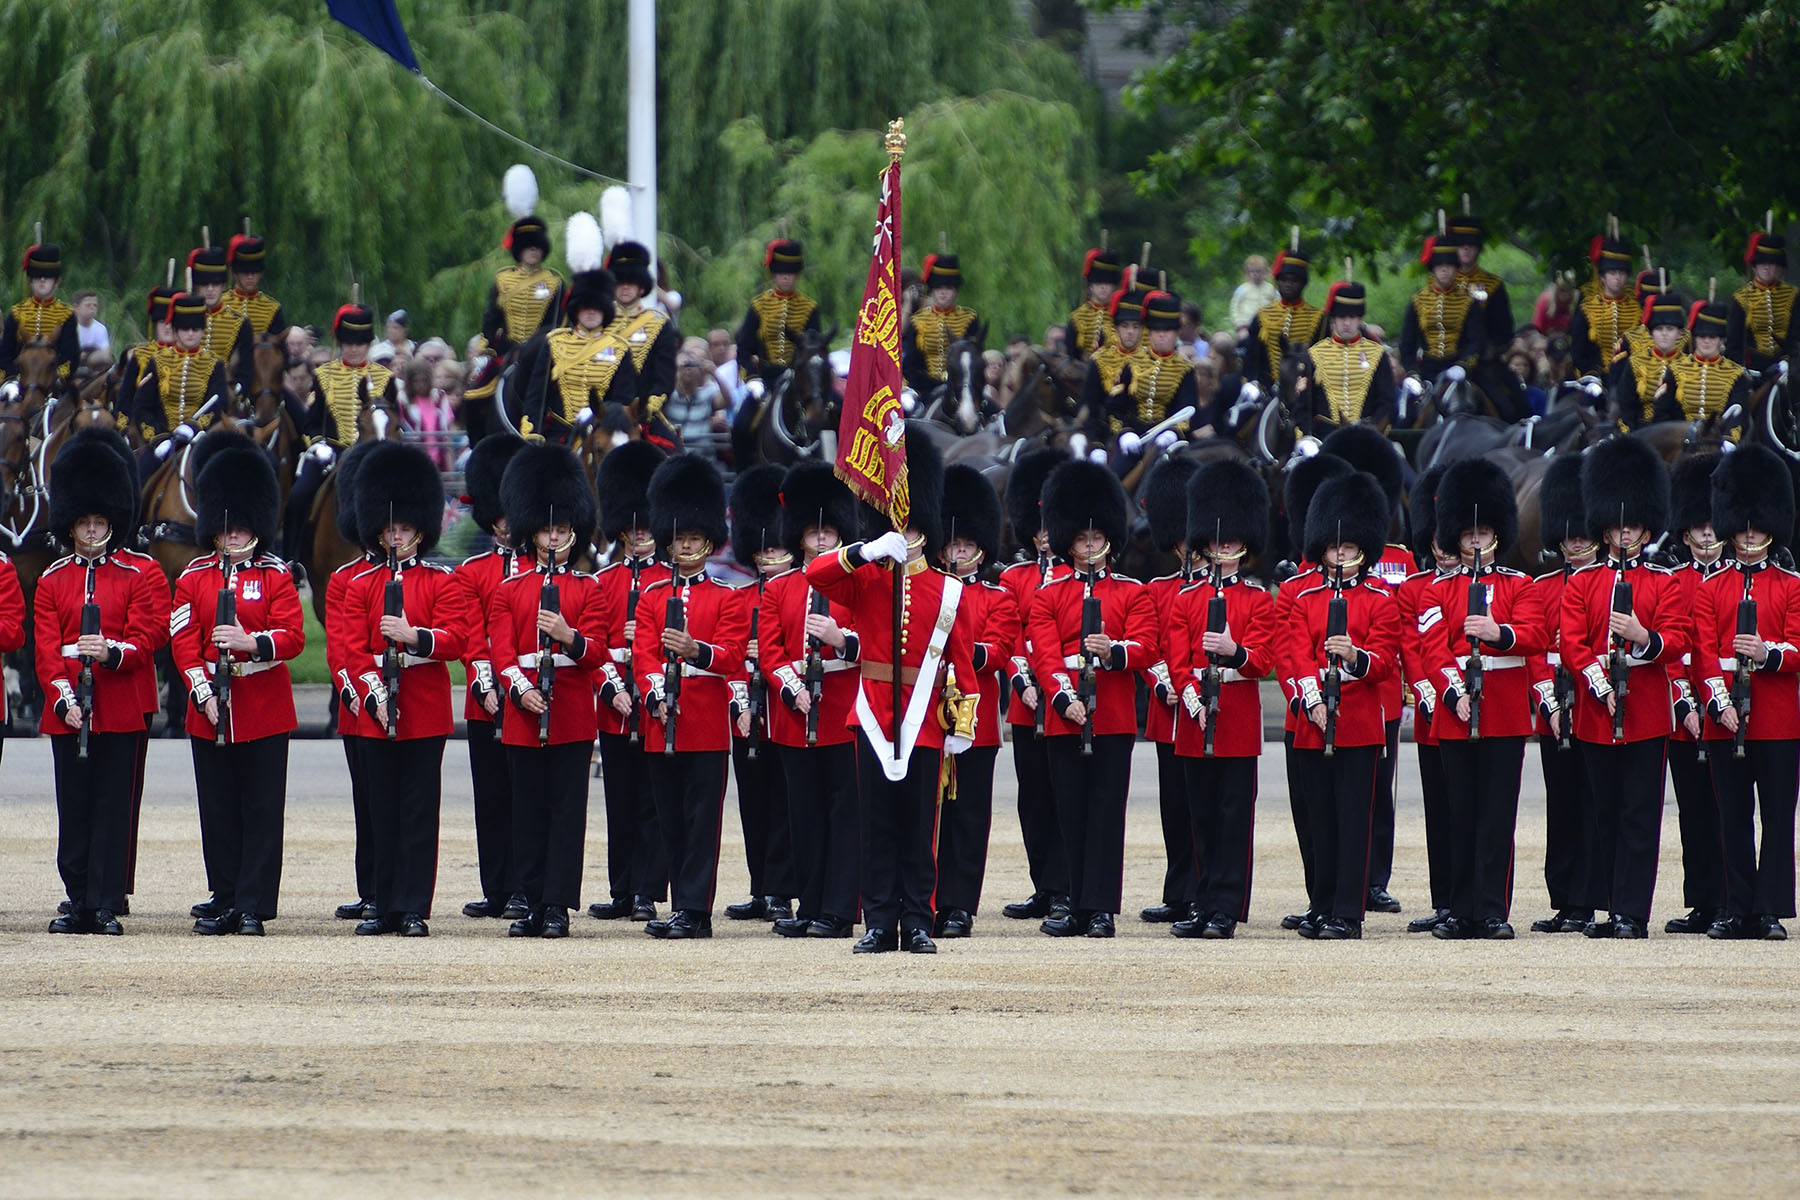 This year, the Coldstream Guards Colour were trooped.